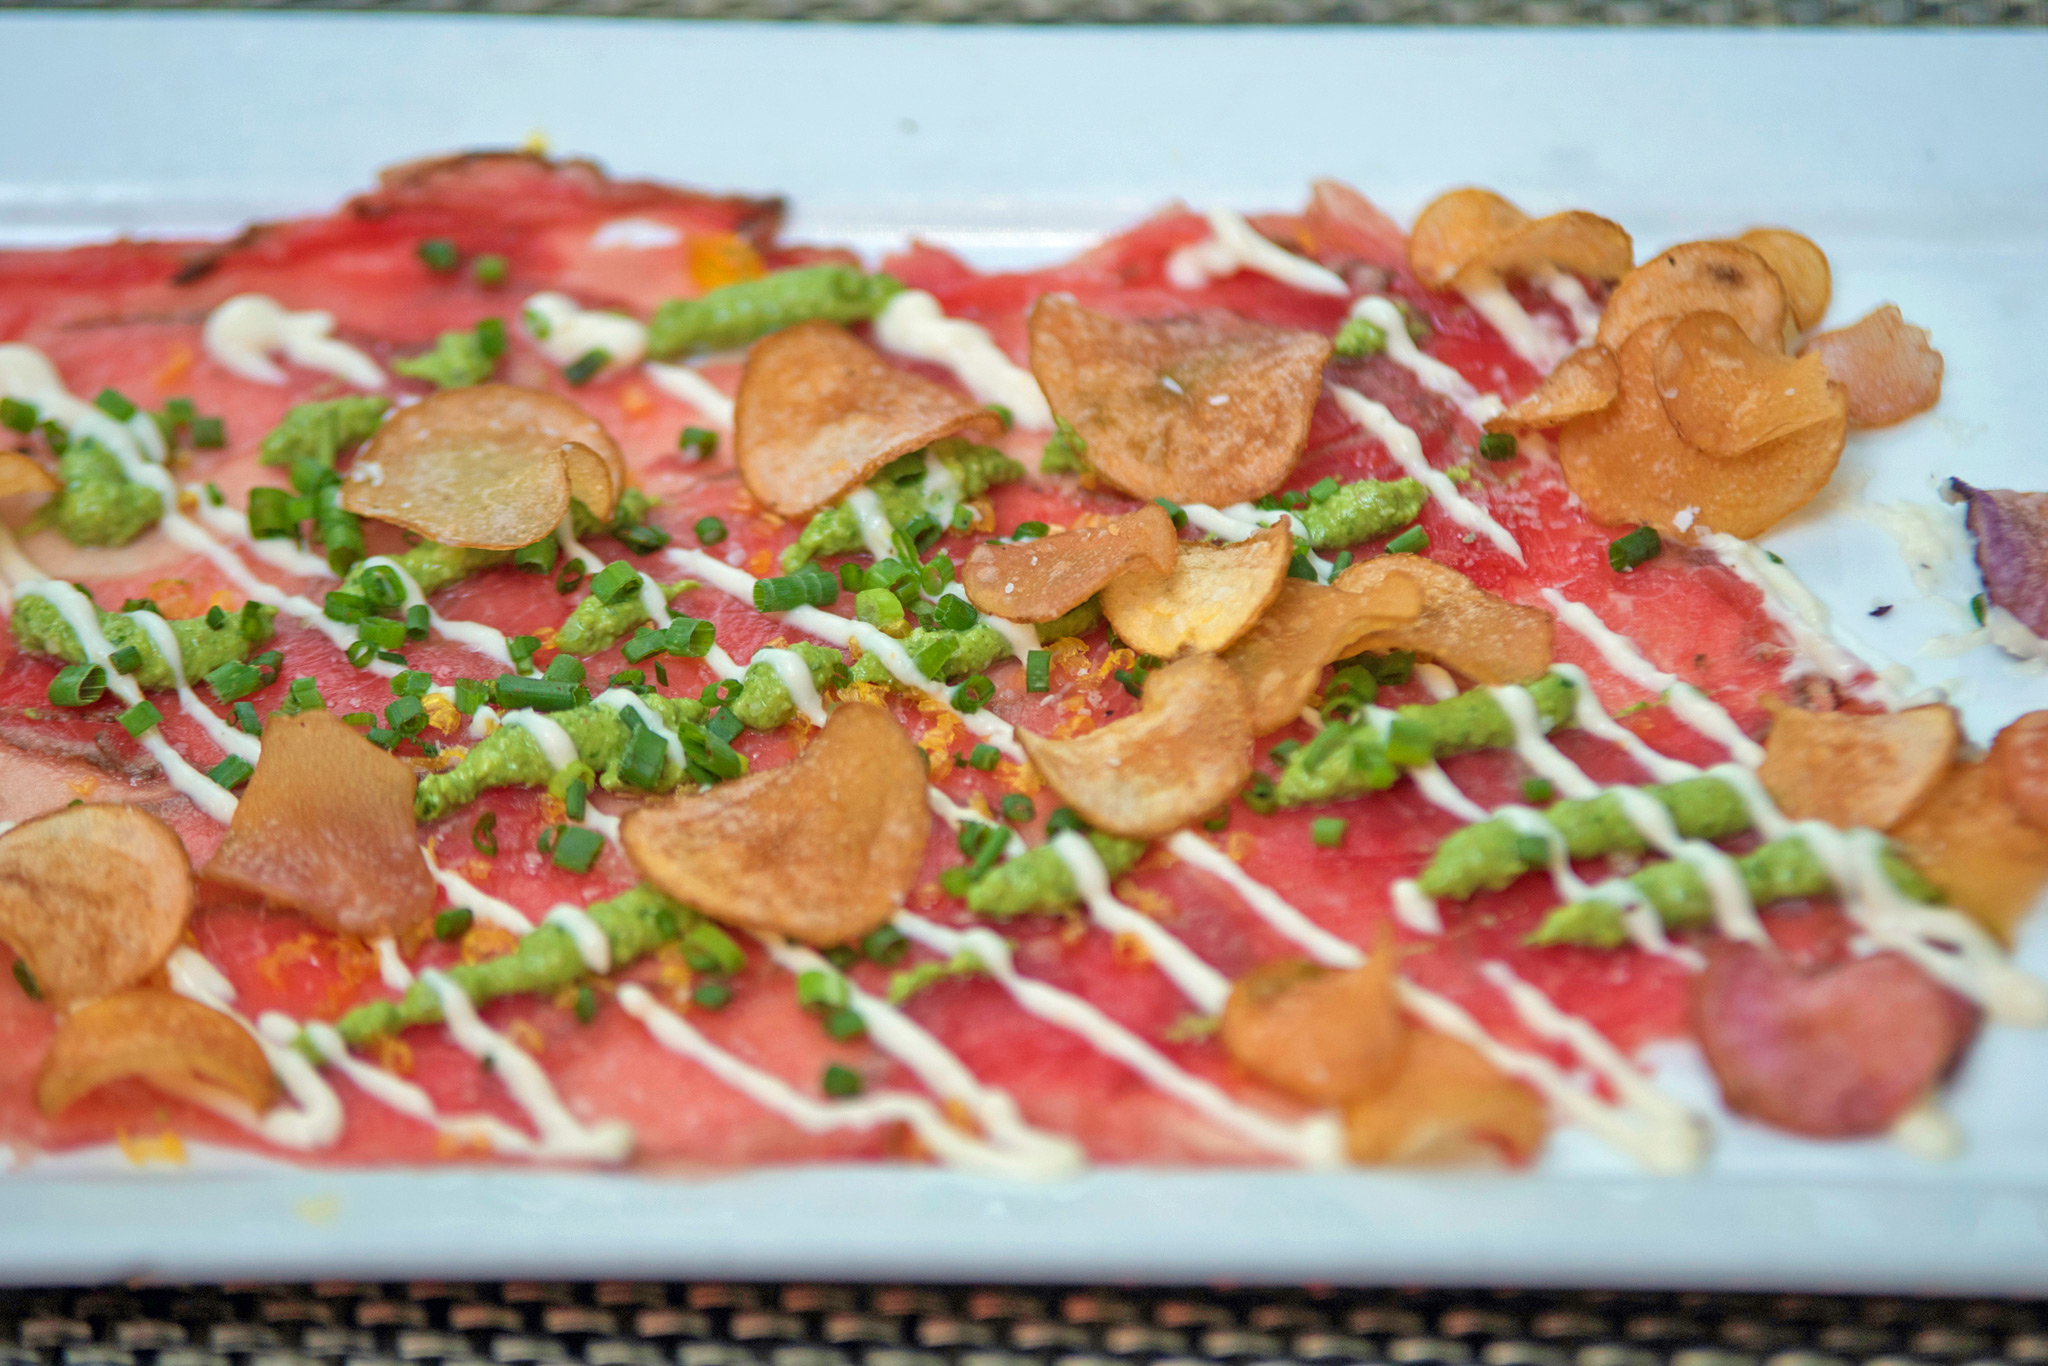 Bison Carpaccio - porcini crusted, cured yolk, house pesto, baby potato chips, garlic horsey sauce, chives